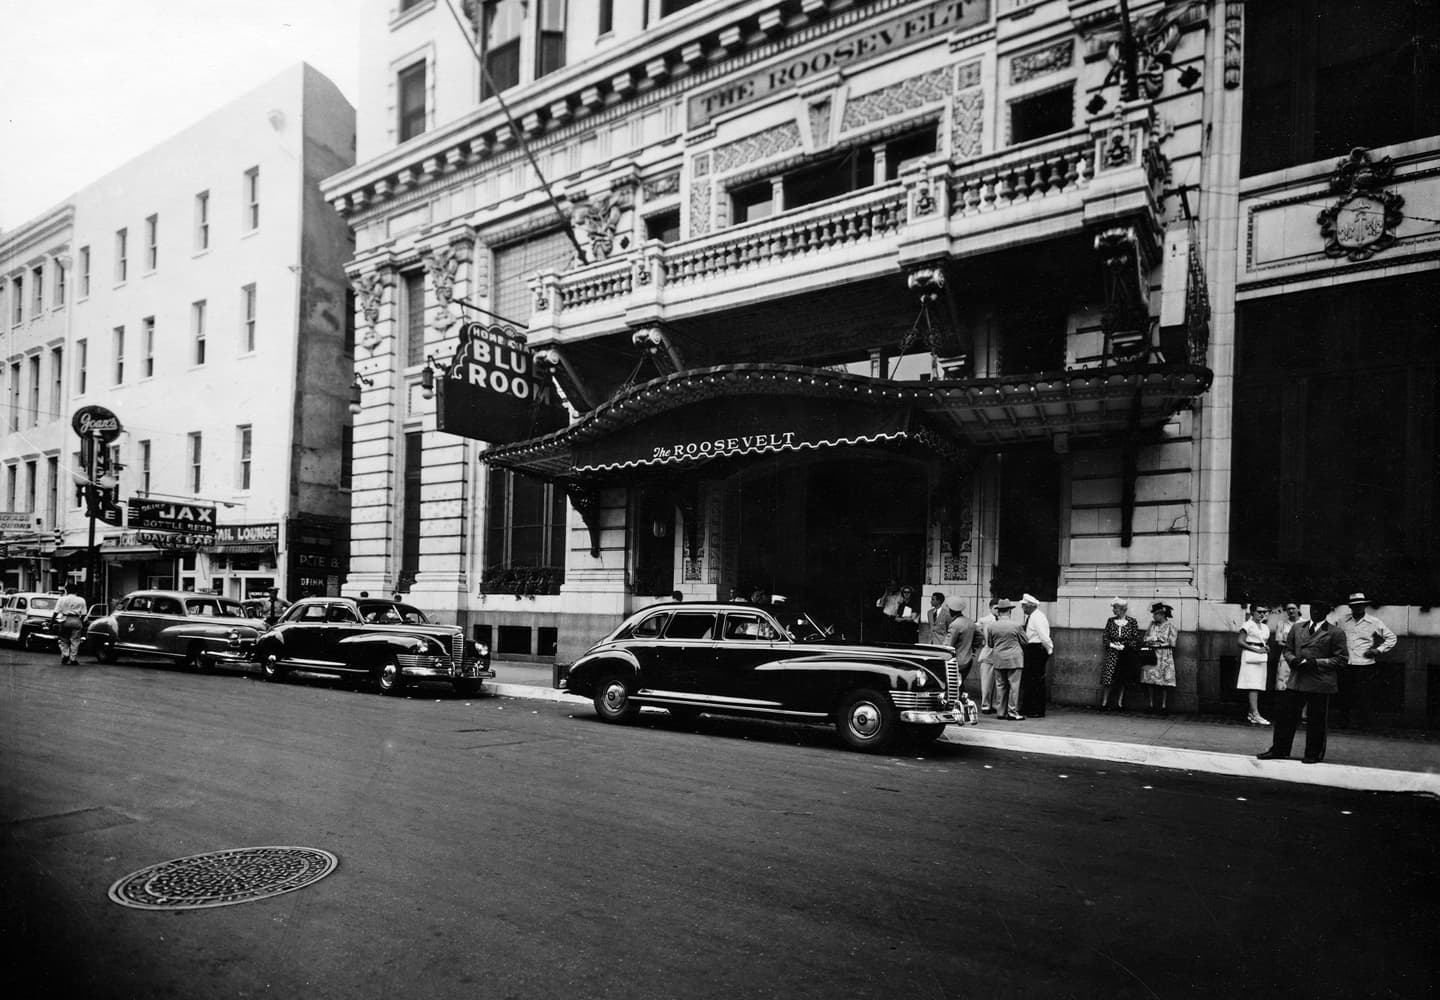 The Roosevelt Hotel, New Orleans, back in the day